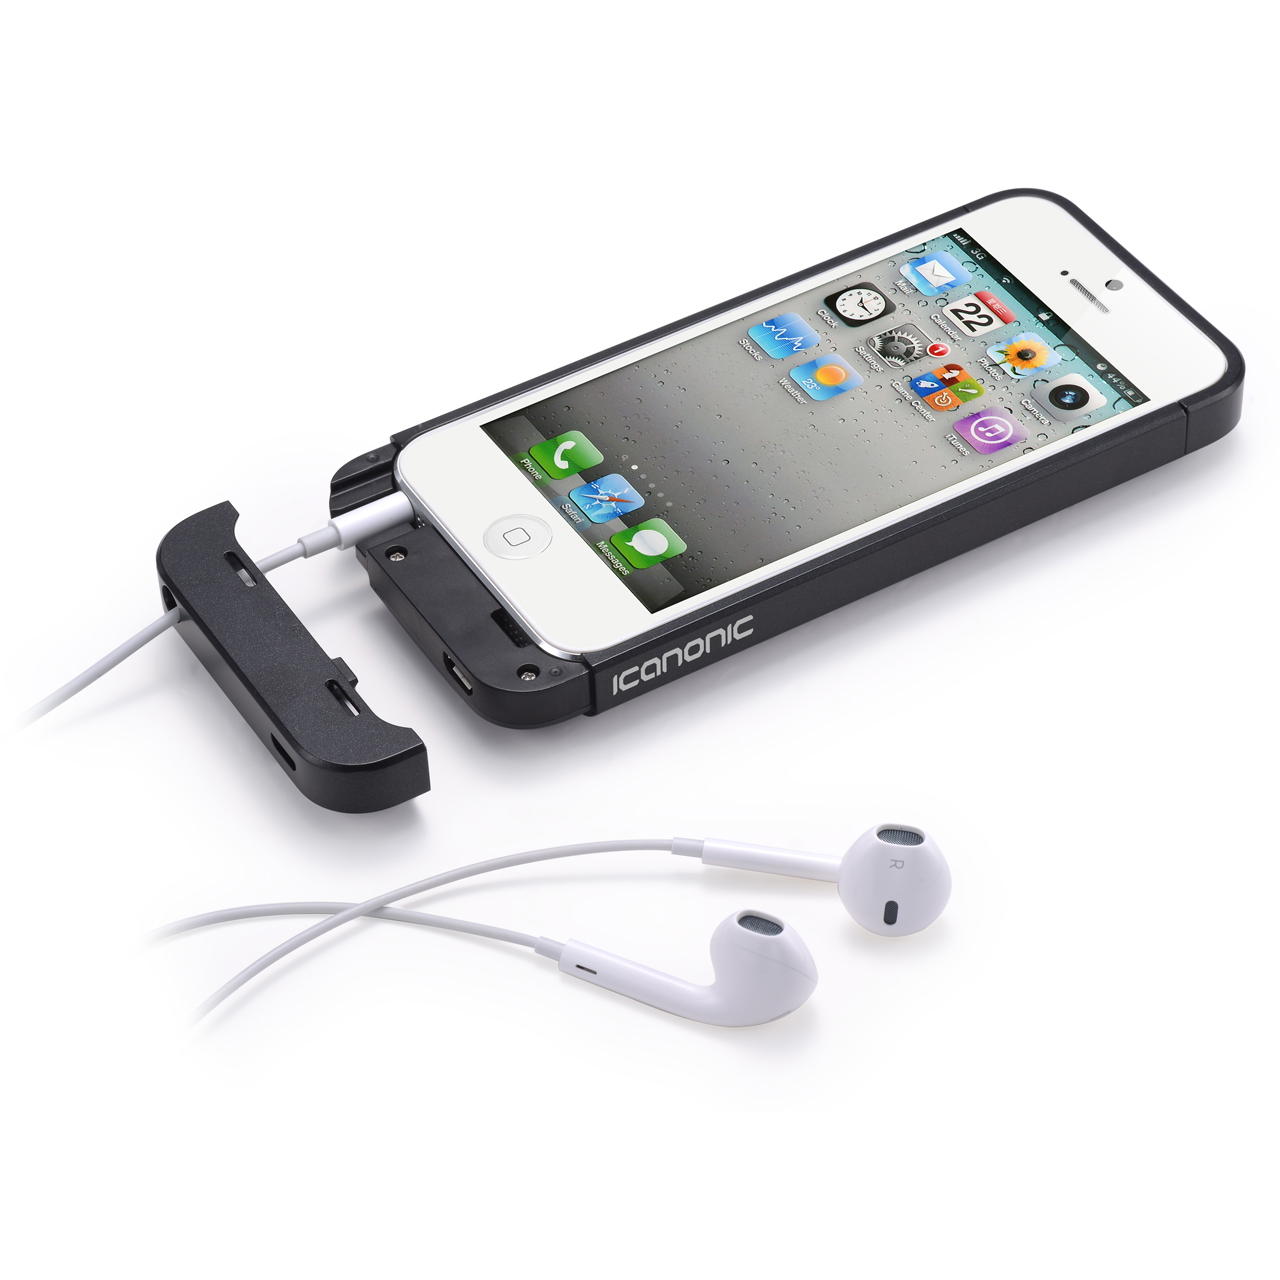 Iphone 5 Solar Charger Case Icanonic iphone 5 charger case